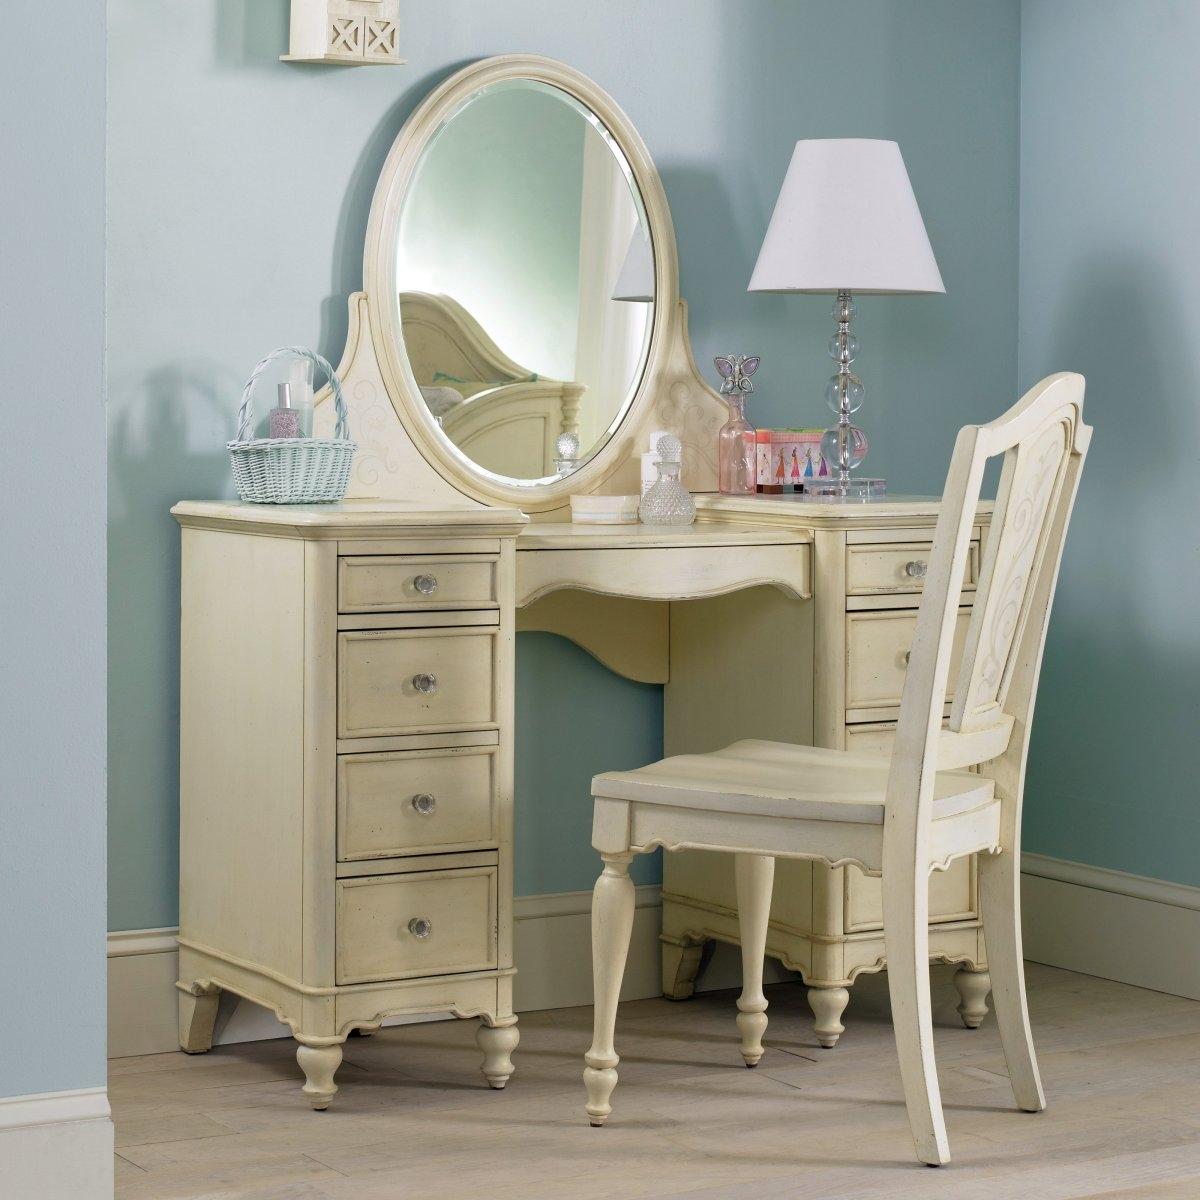 Vanity Table With Lights Around Mirror Ideas  Mai Decor